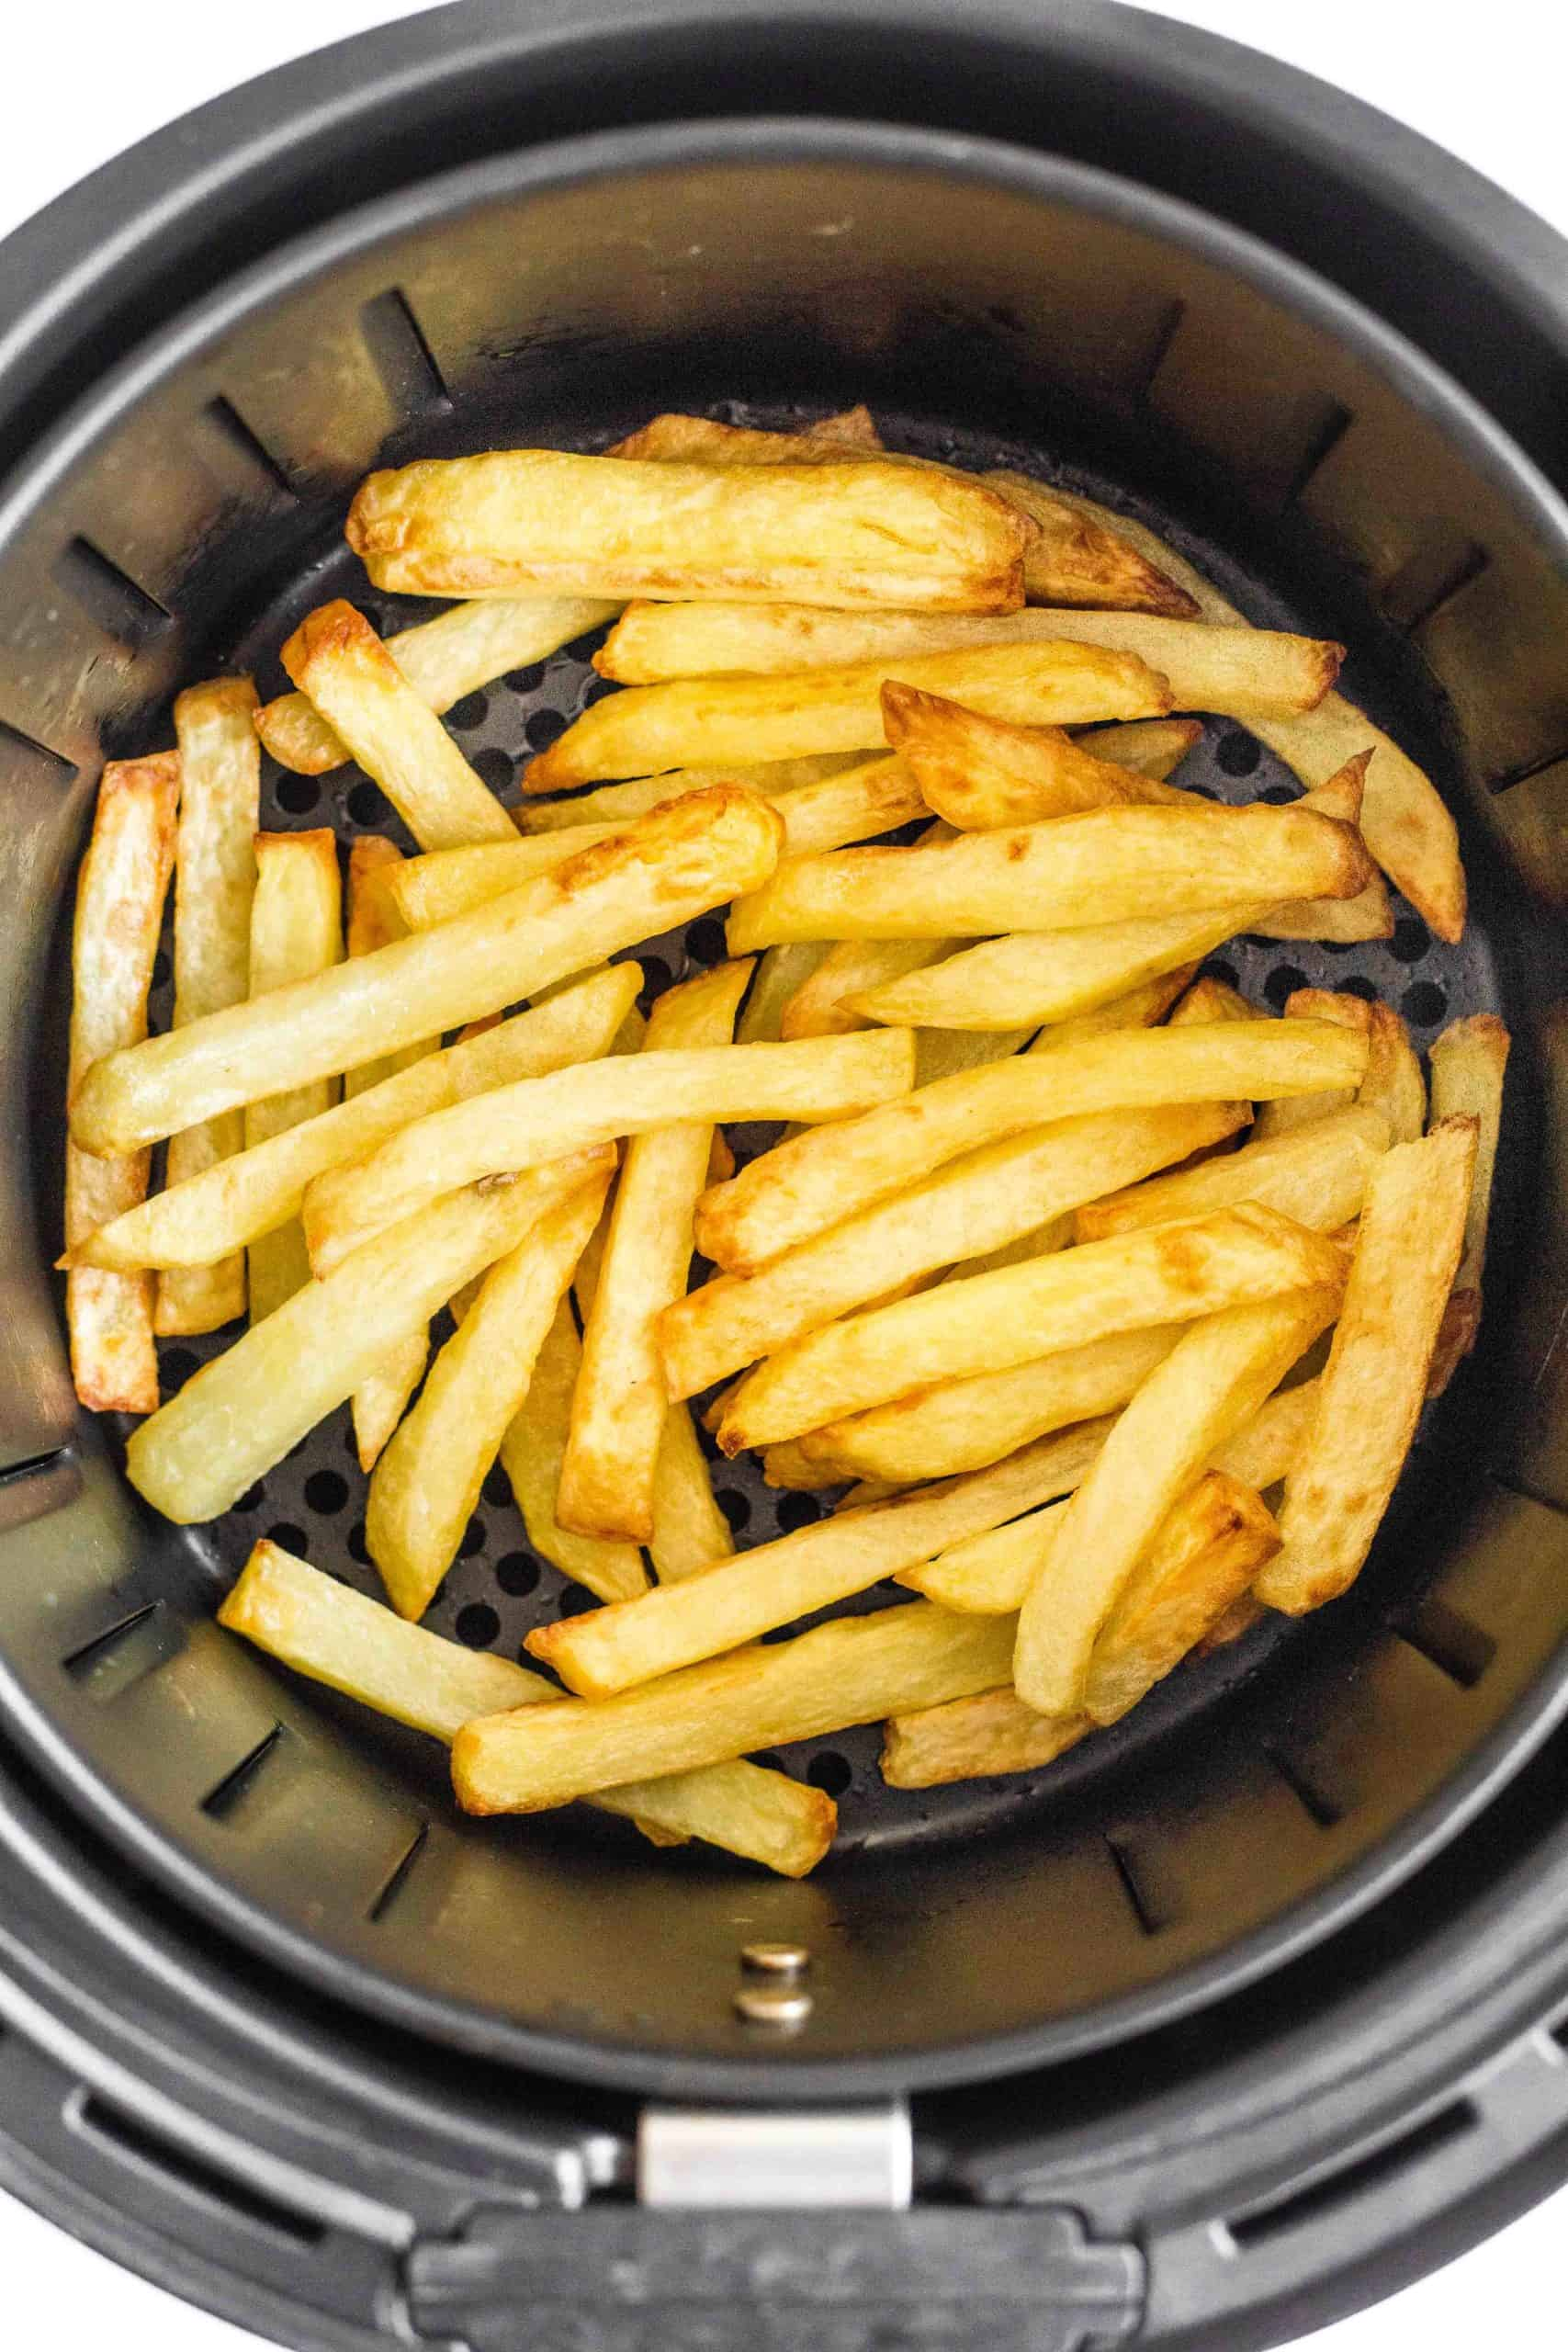 Freshly cooked french fries in an air fryer basket.